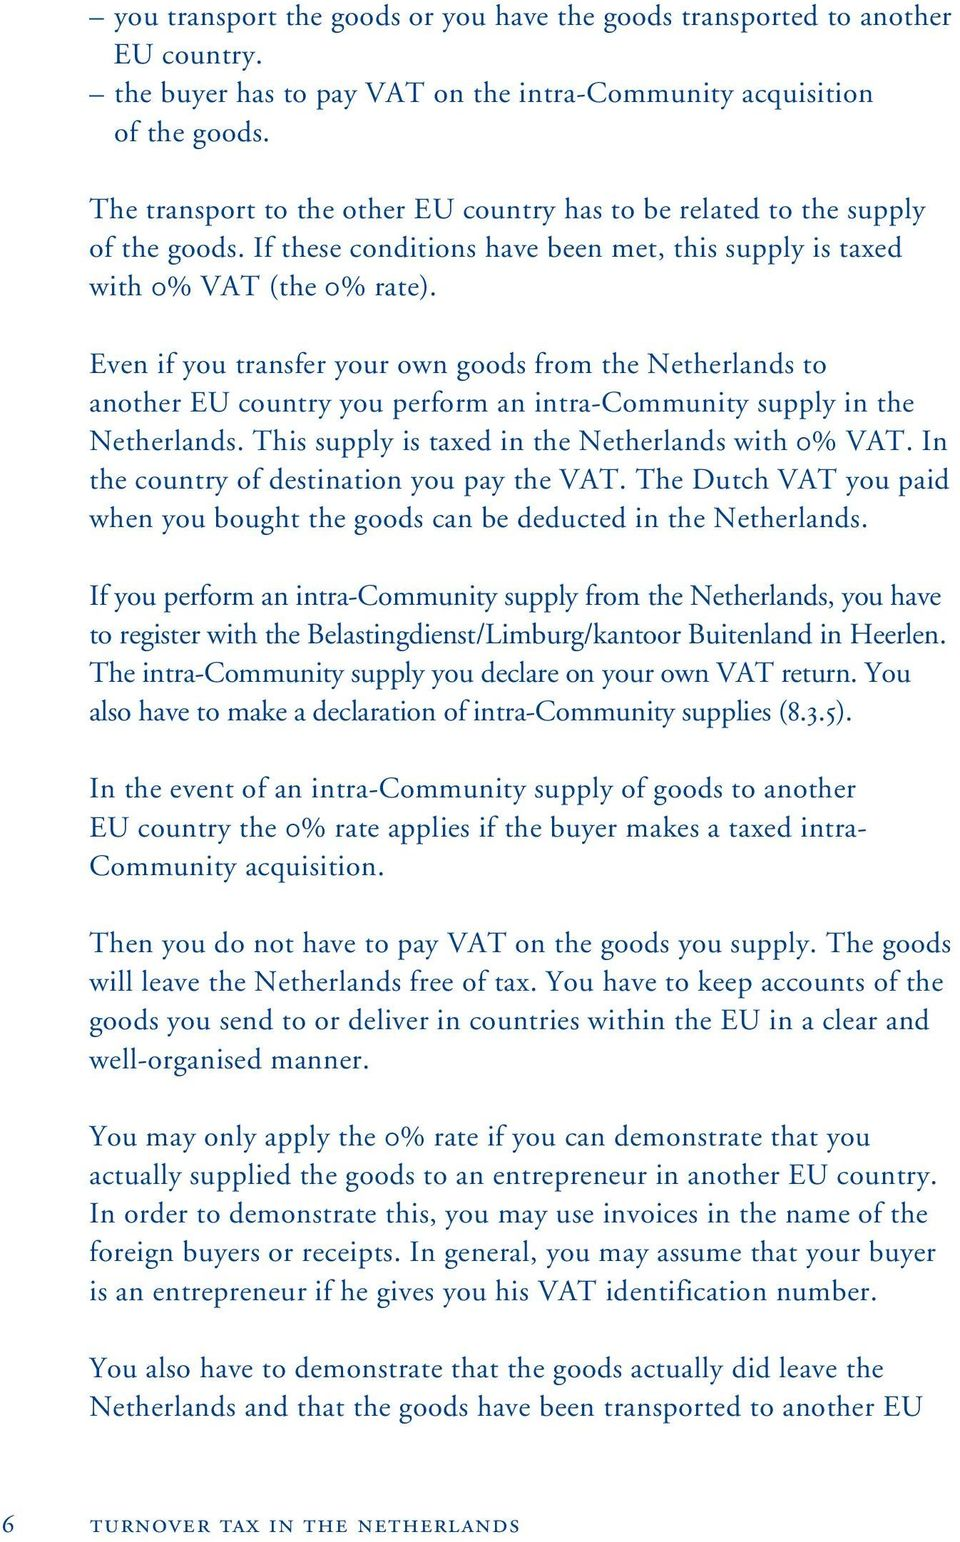 Even if you transfer your own goods from the Netherlands to another EU country you perform an intra-community supply in the Netherlands. This supply is taxed in the Netherlands with 0% VAT.